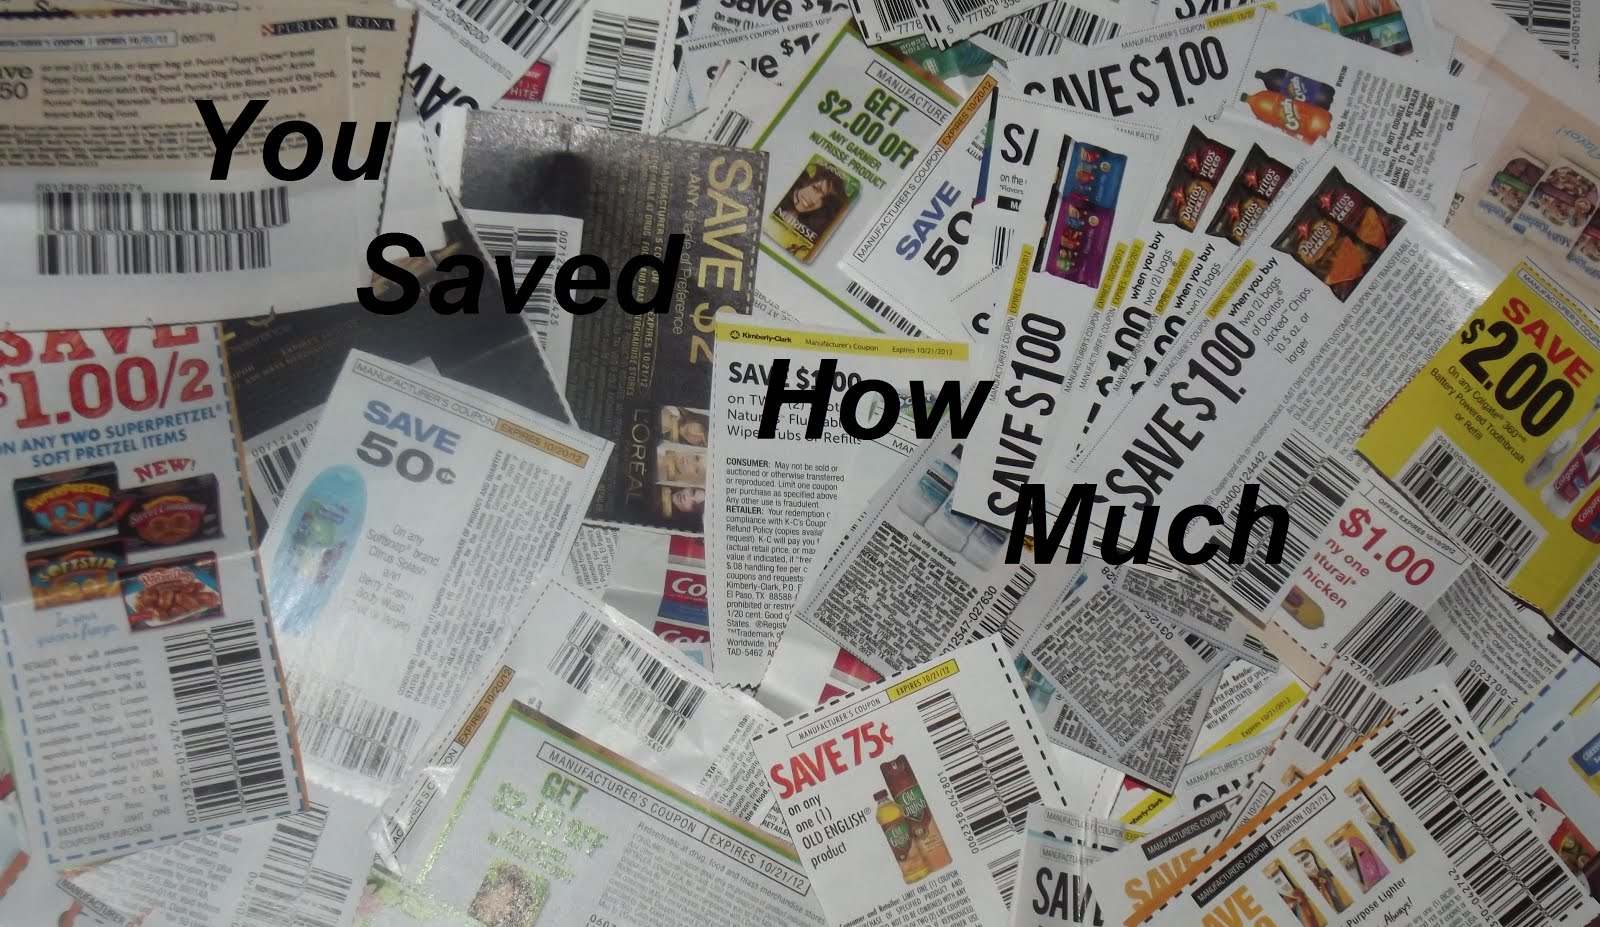 You Saved How Much